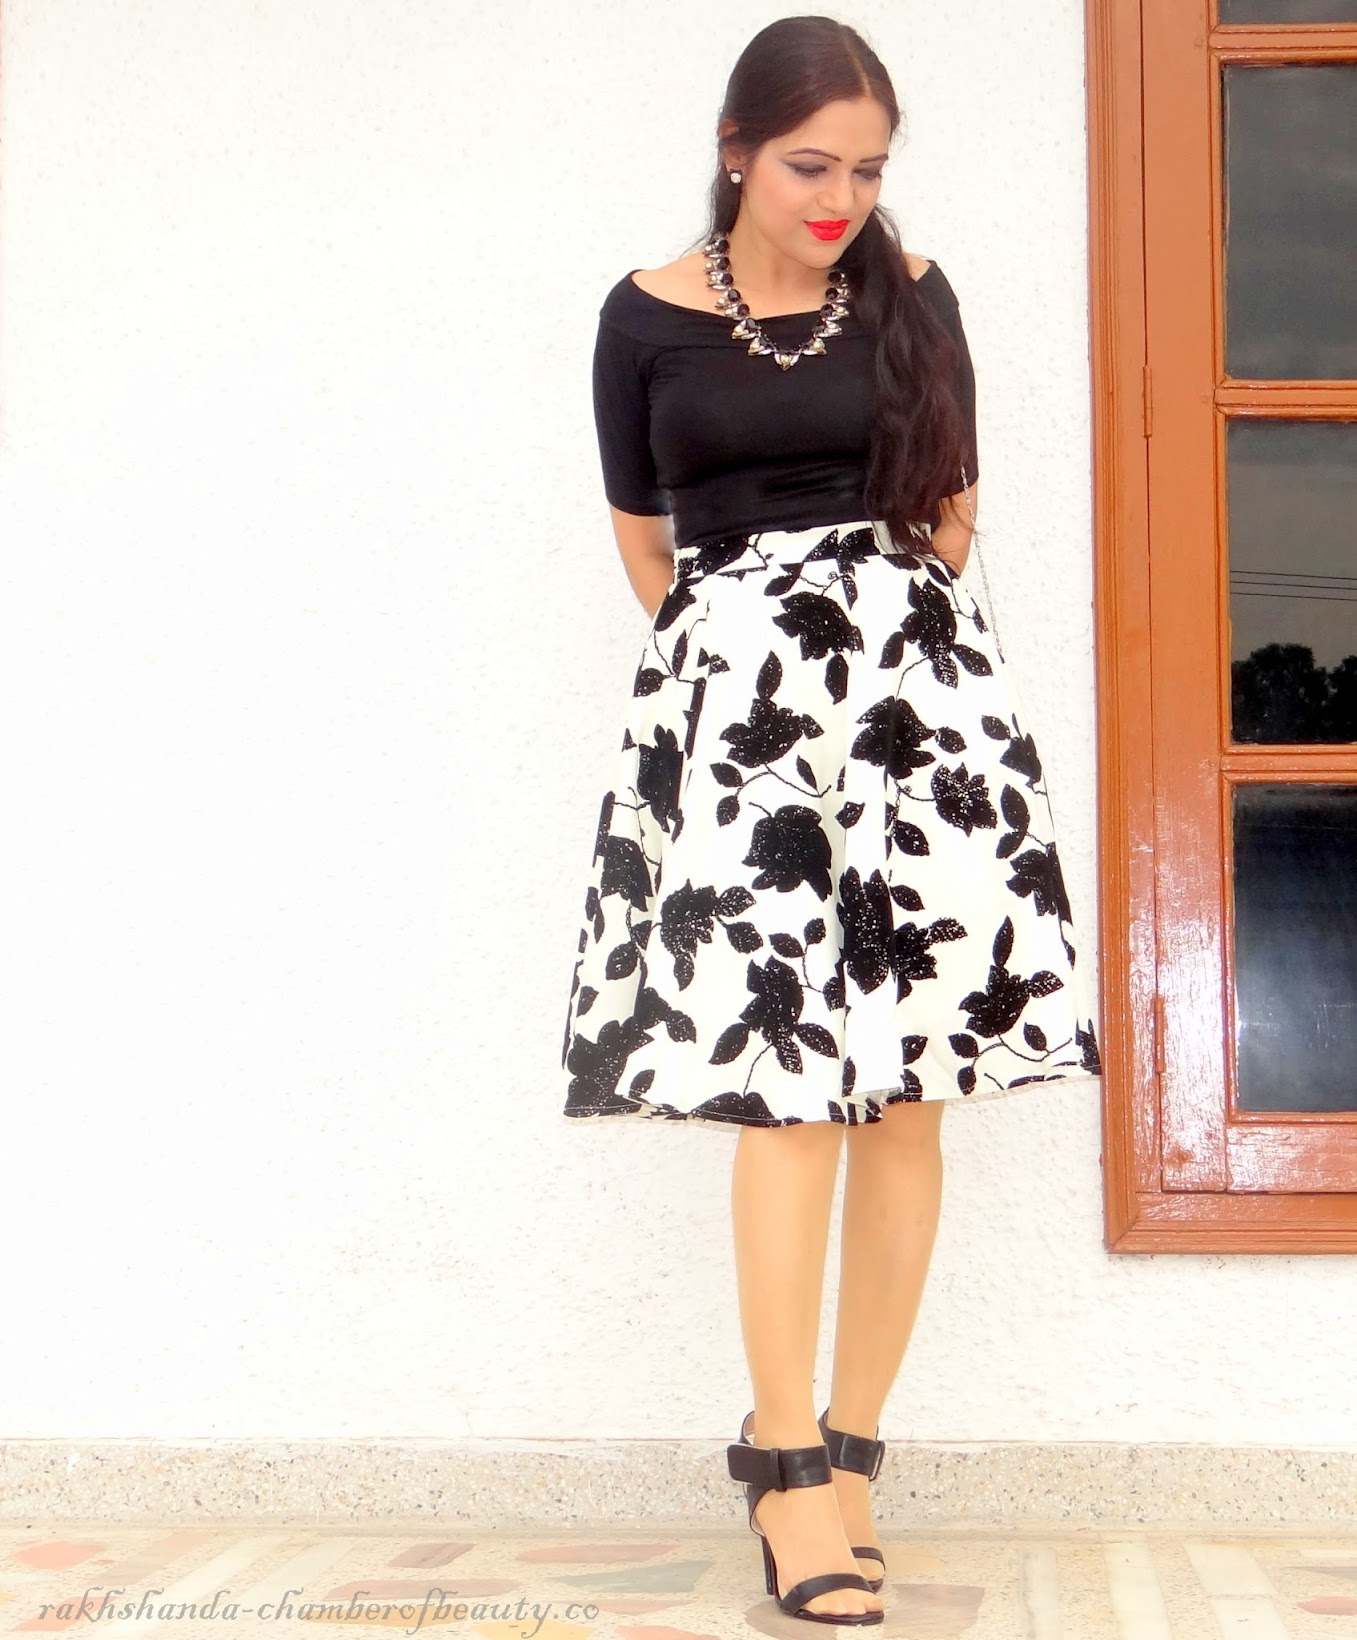 6bd0790930 Summer Fashion- Monochromed it (OOTD)| How to style a black and white midi  skirt - Chamber of beauty